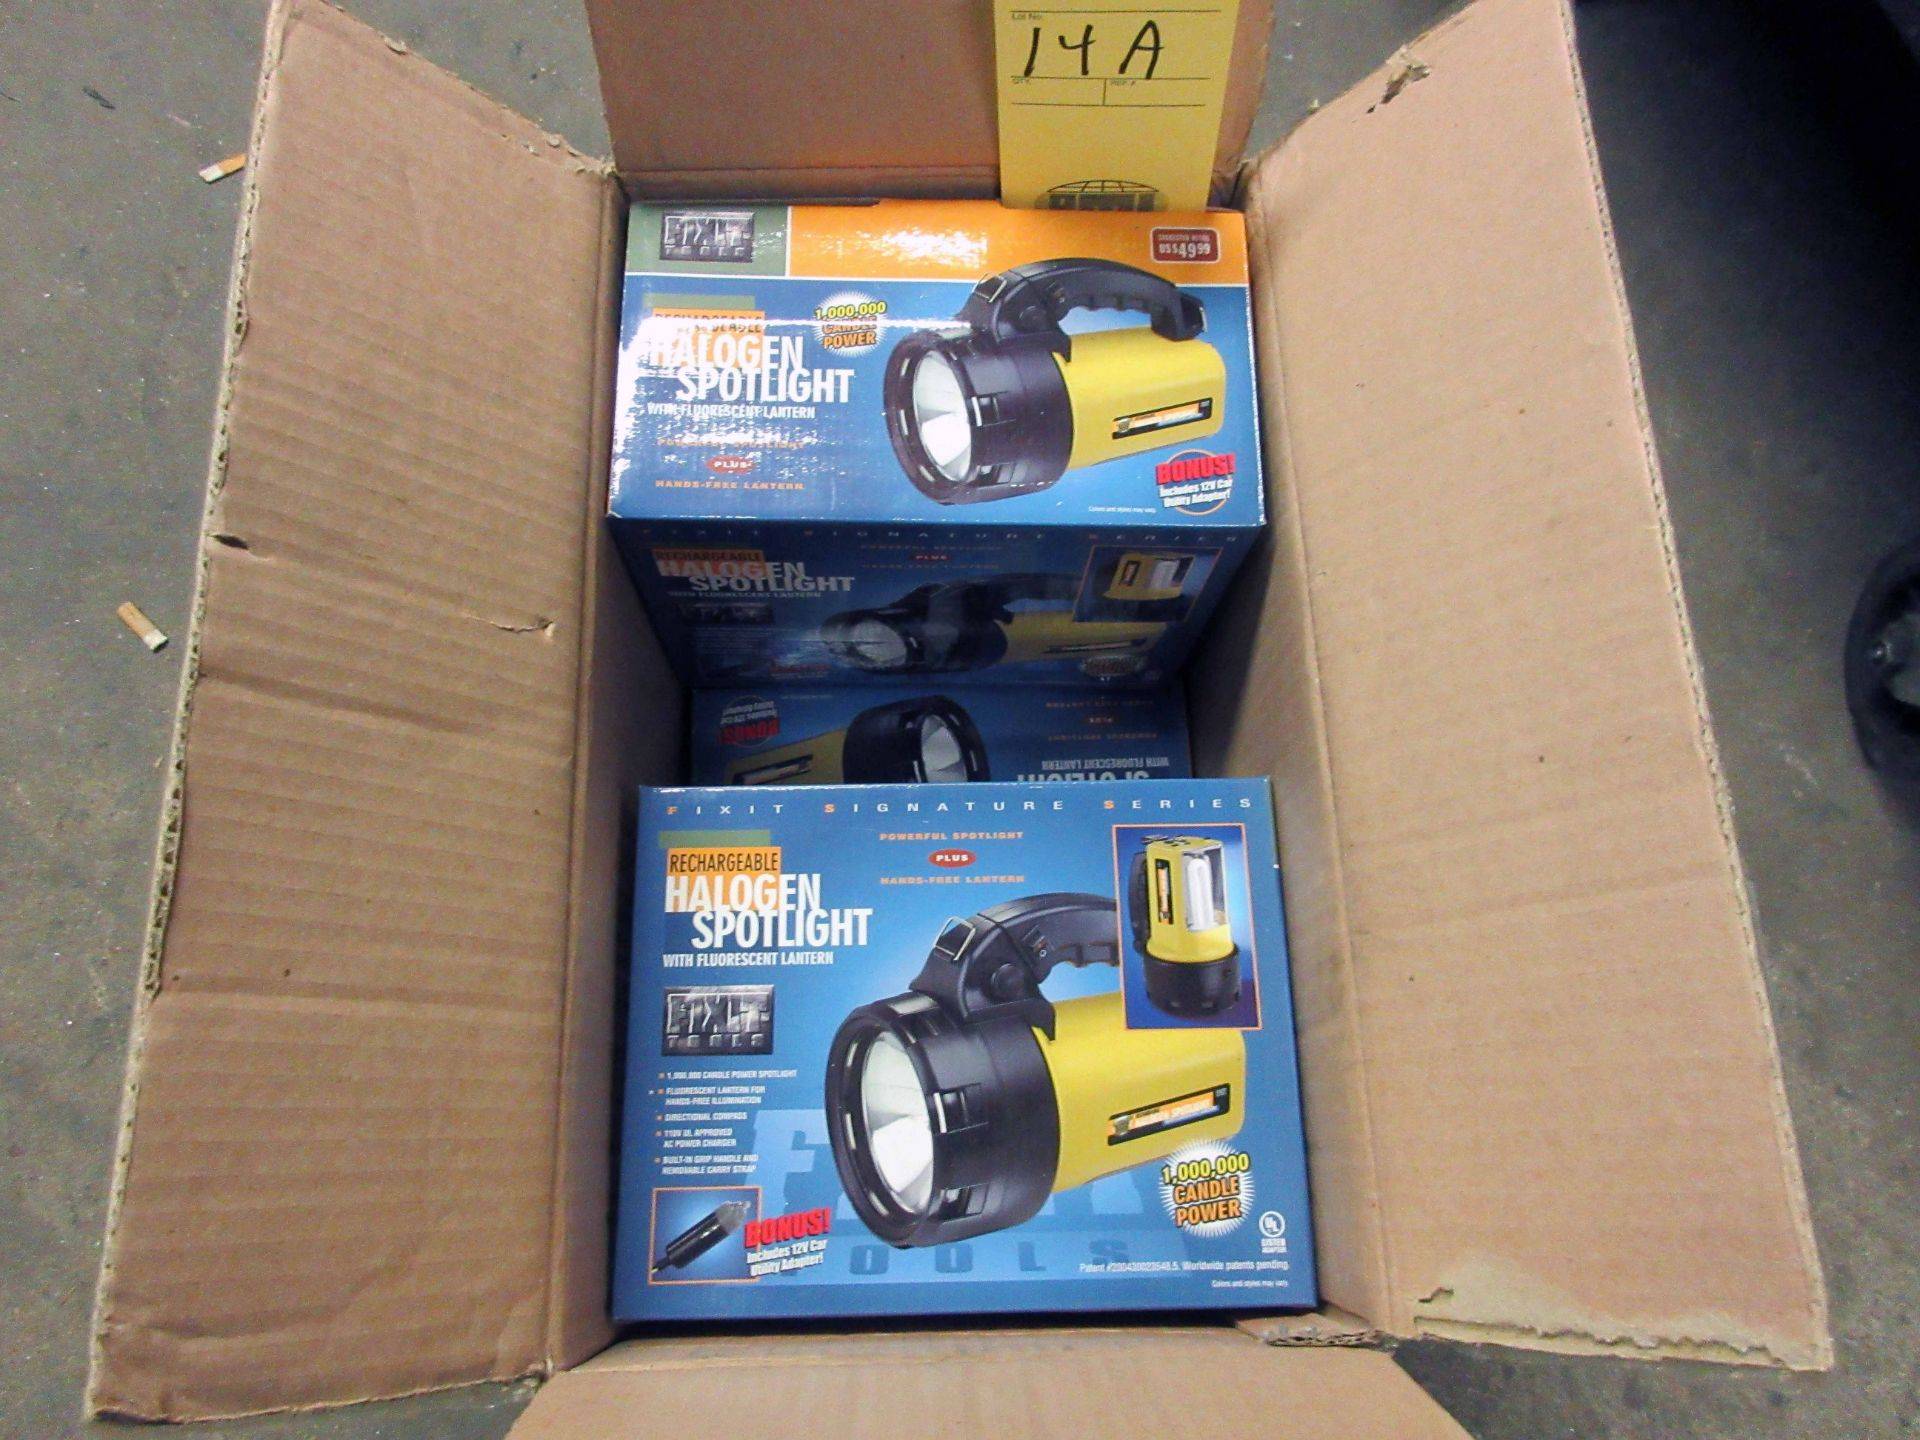 Lot 14A - LOT OF HALOGEN SPOTLIGHTS (5), rechargeable (new in box)